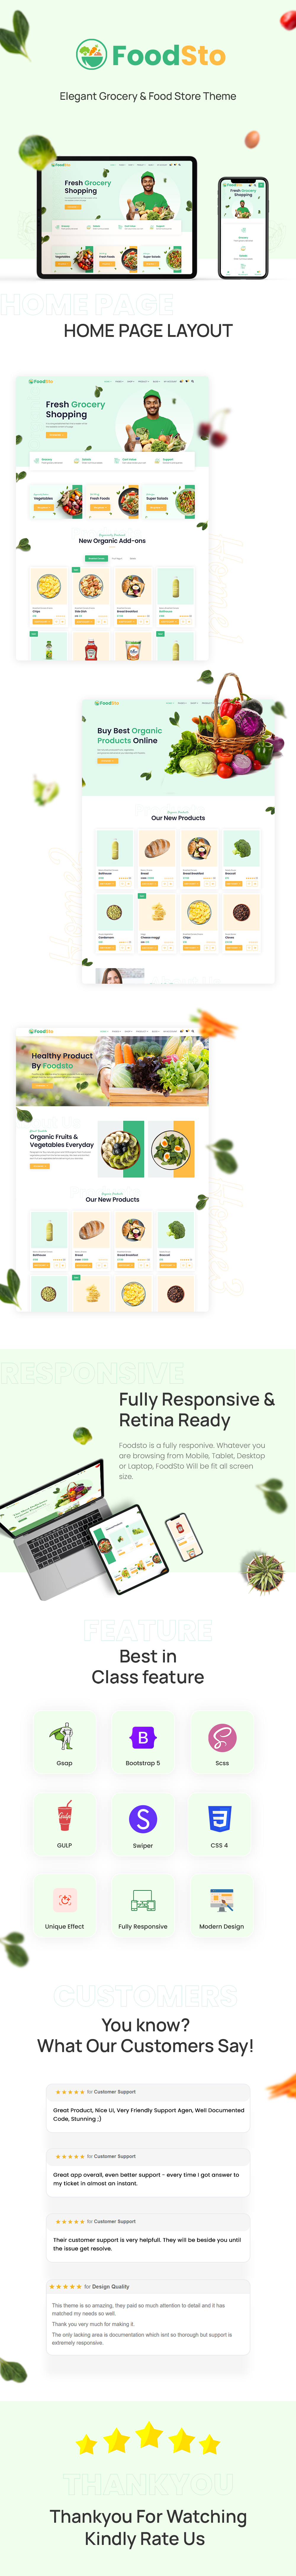 Grocery and Food Store HBS SCSS and HTML Theme   FoodSto   Iqonic Design grocery and food store hbs scss and html theme Foodsto foodsto long preview